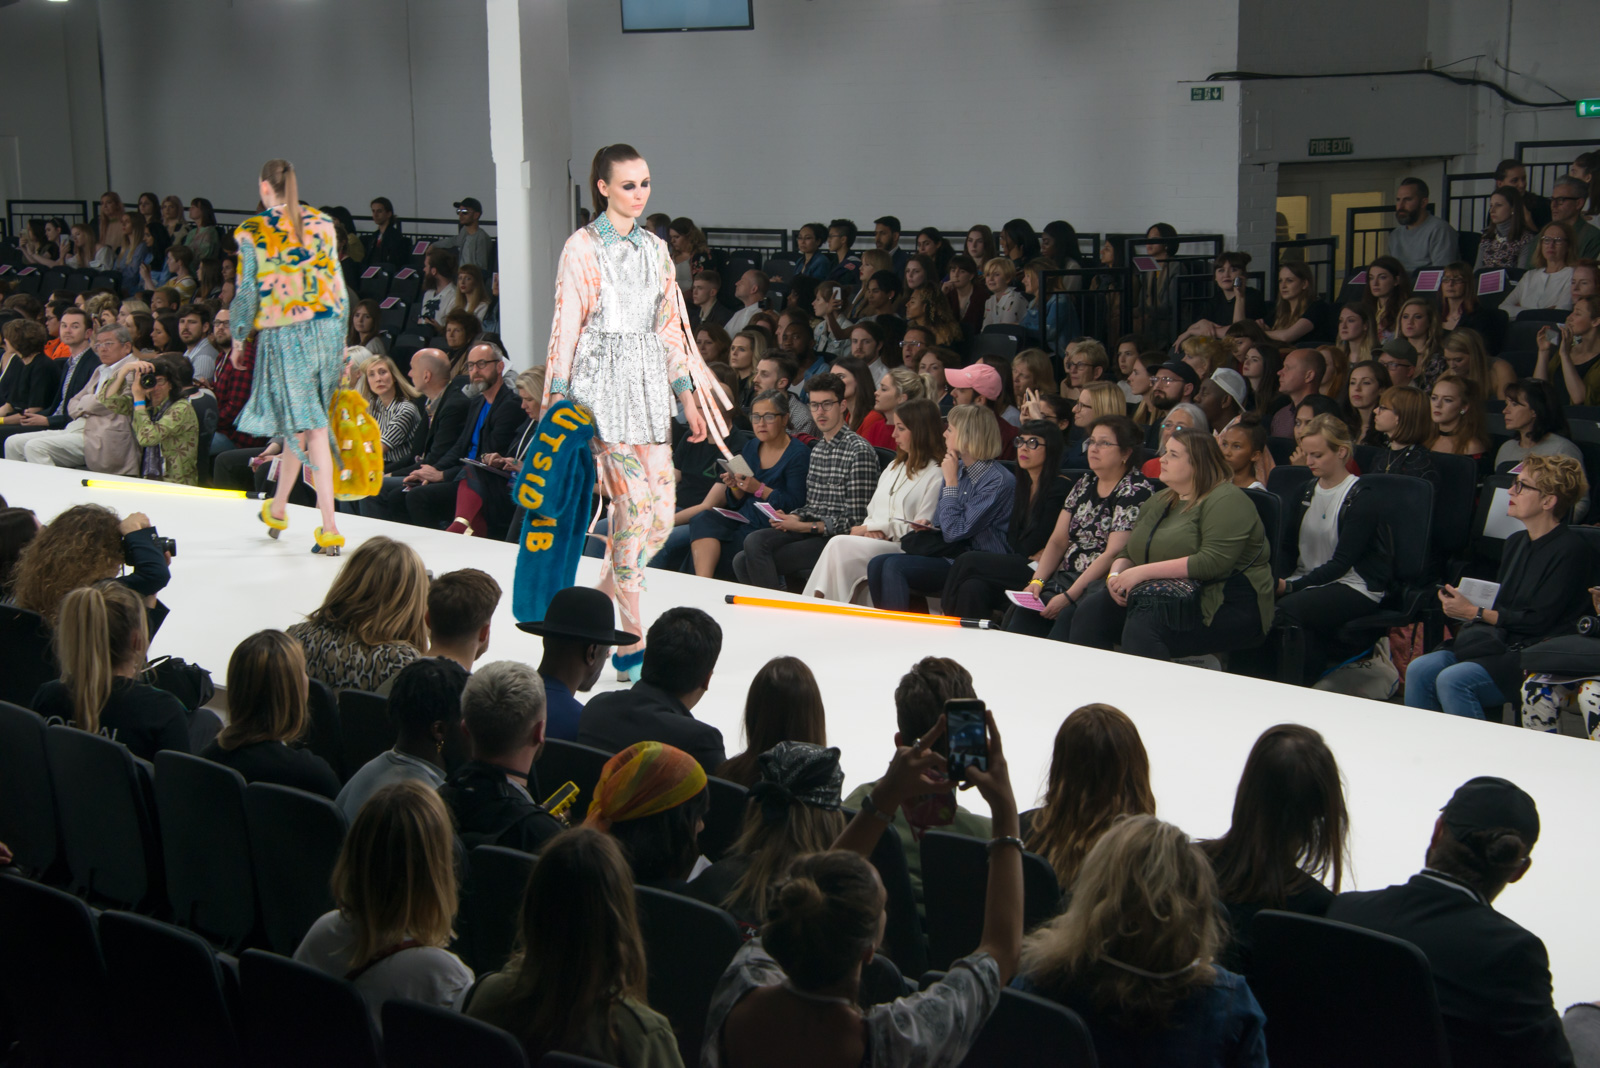 manchester crowd and catwalk 050617 5 image by tina mayr_.jpg